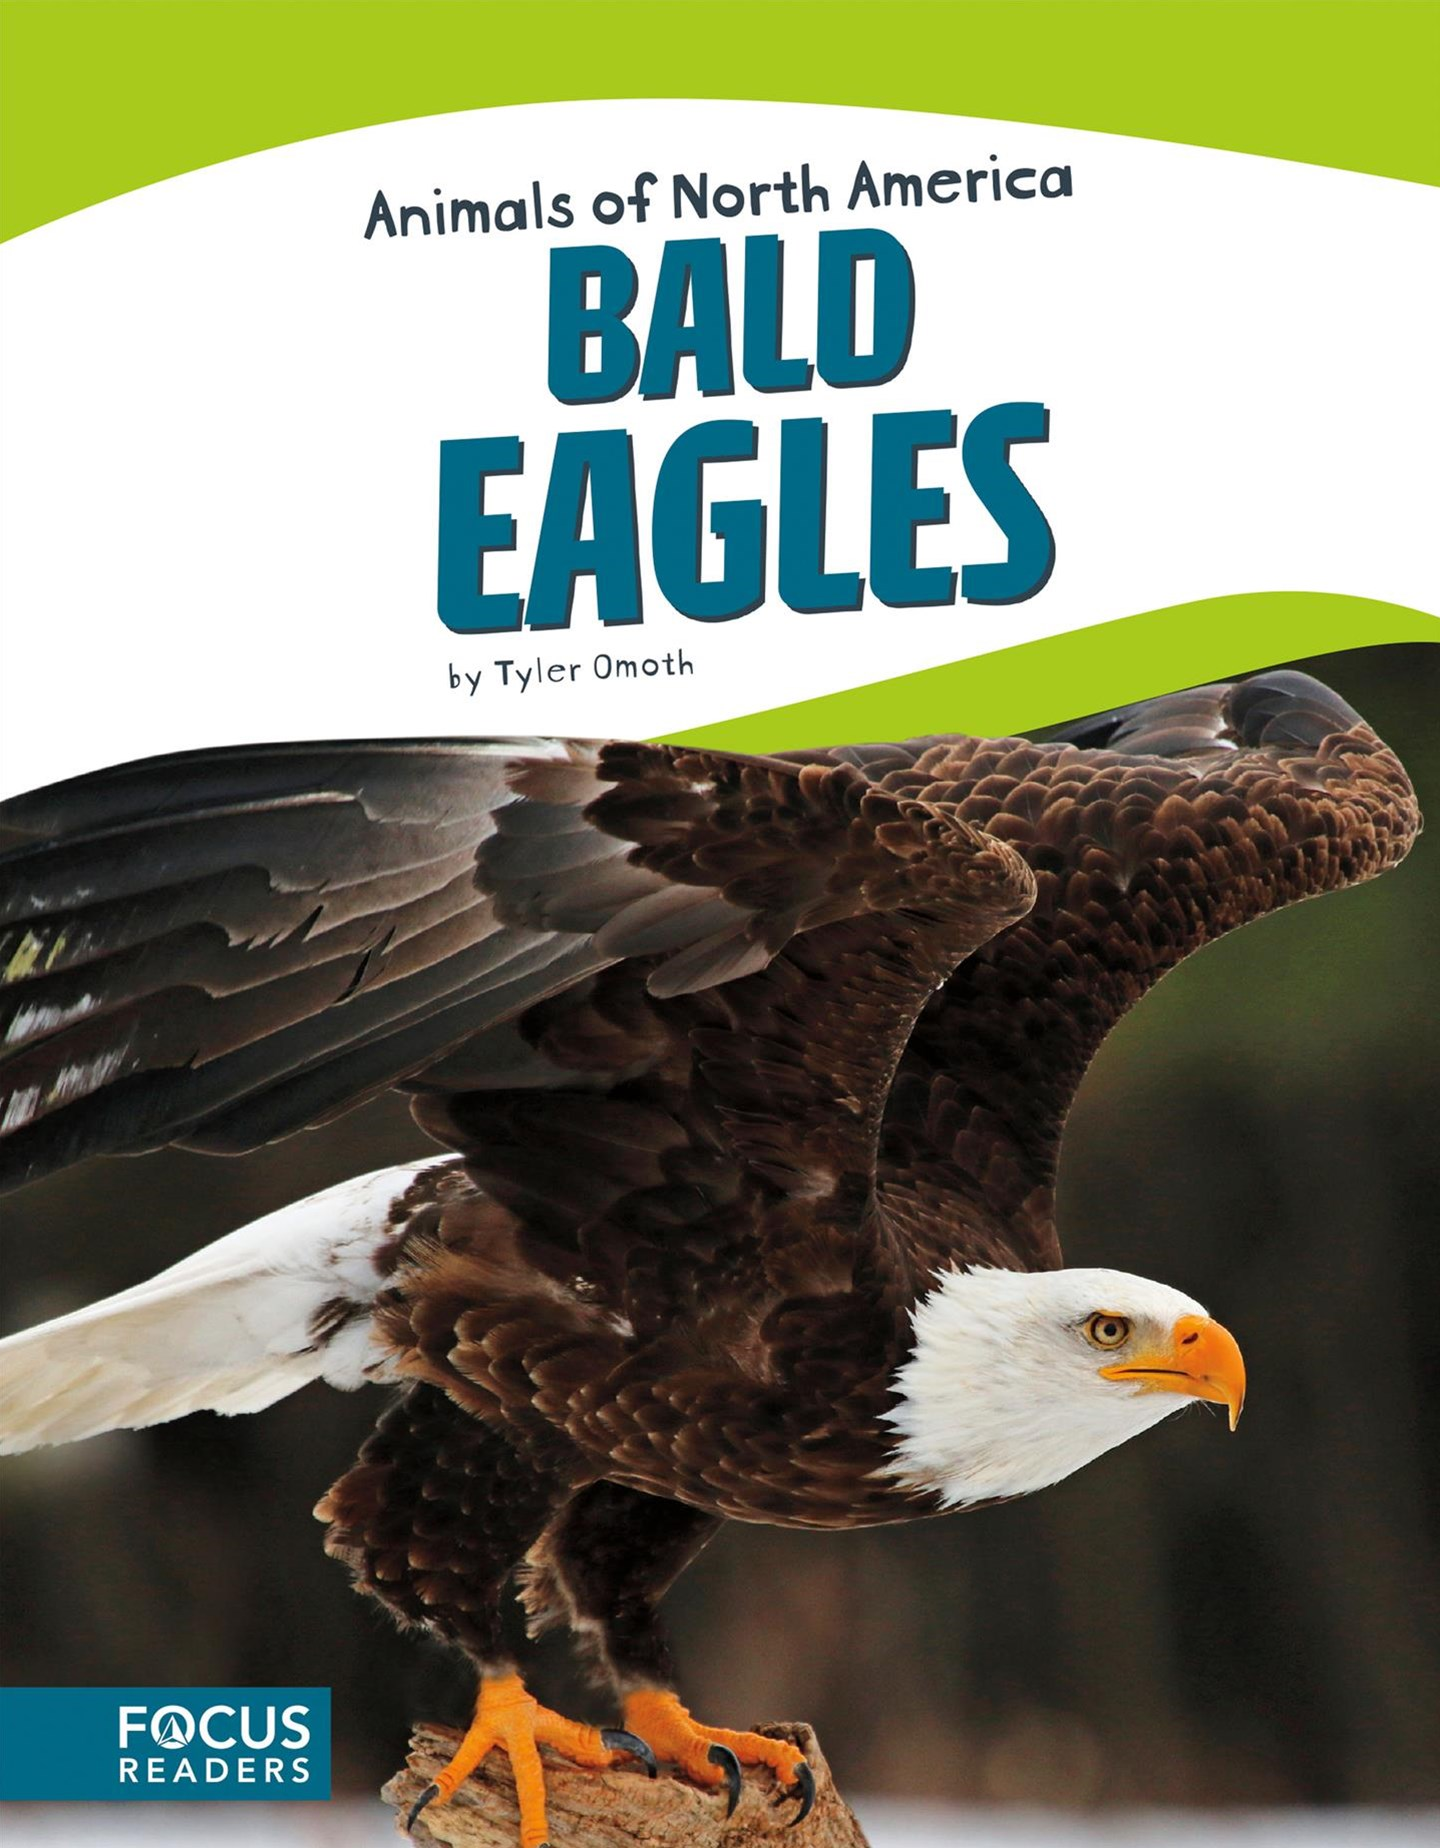 Animals of North America: Bald Eagles